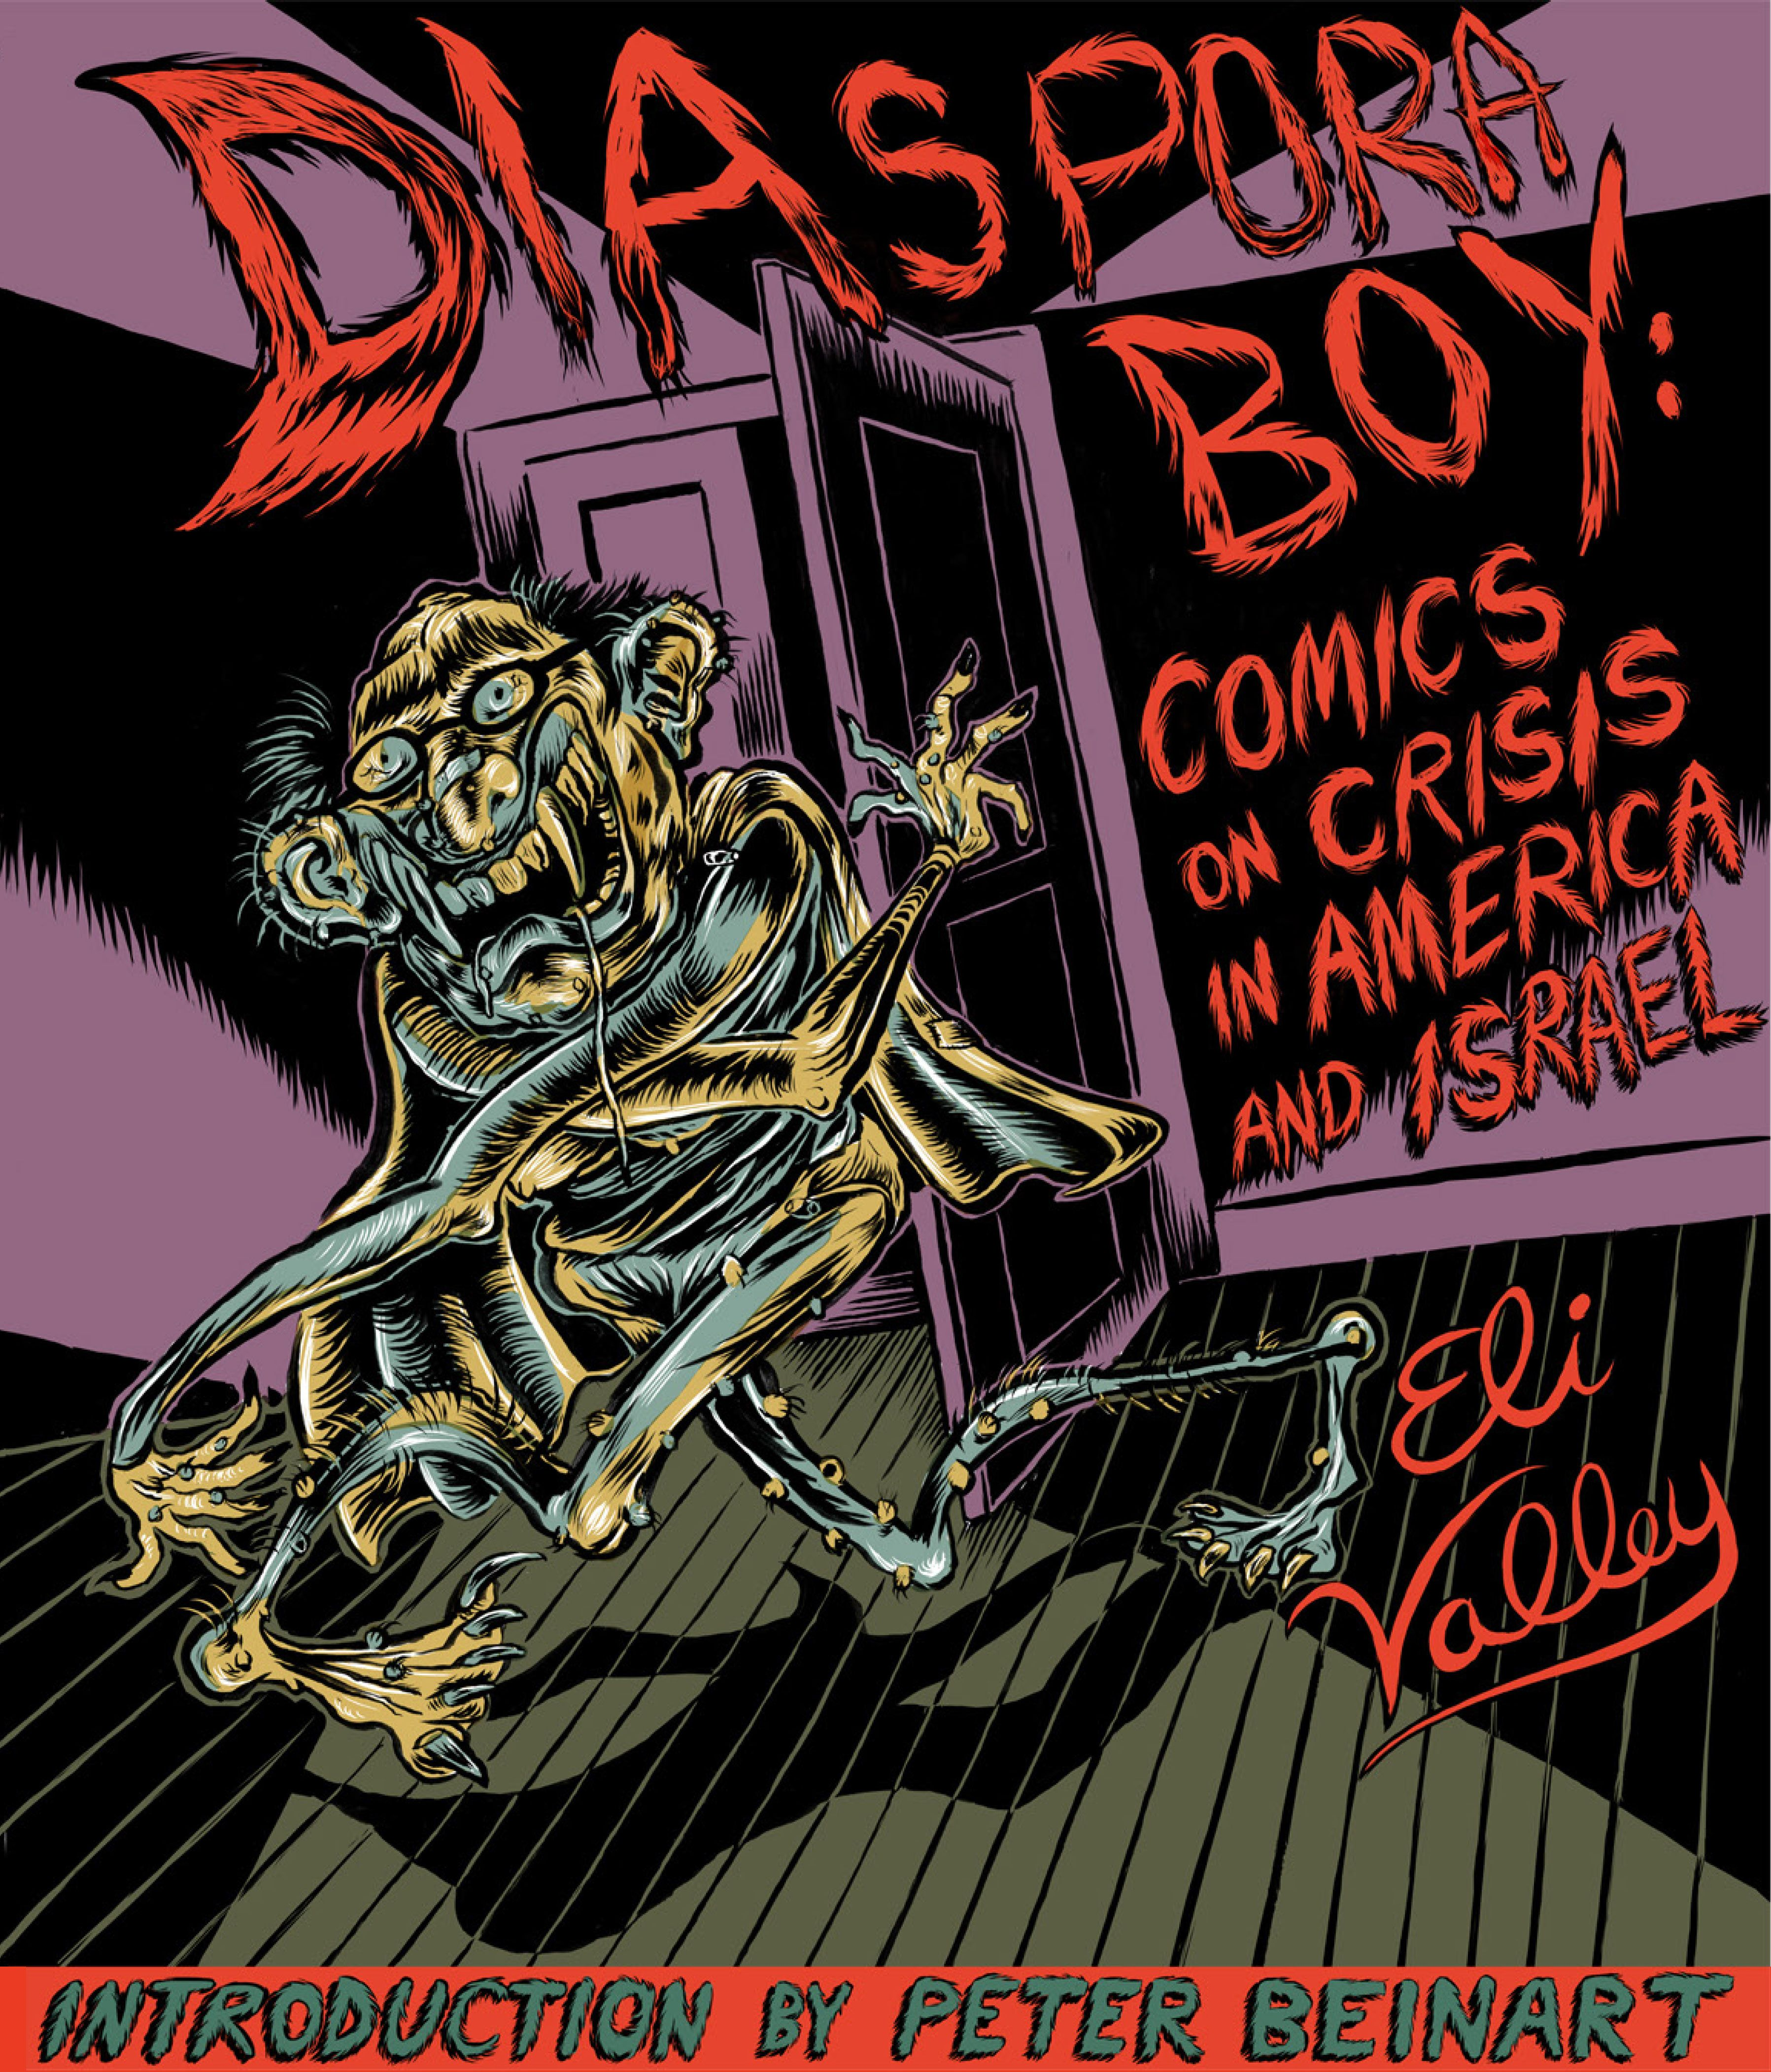 Diaspora Boy Comics On Crisis In America And Israel By Eli Valley Cover Illustration By Eli Valley Published In 2017 Comics Books For Boys Books